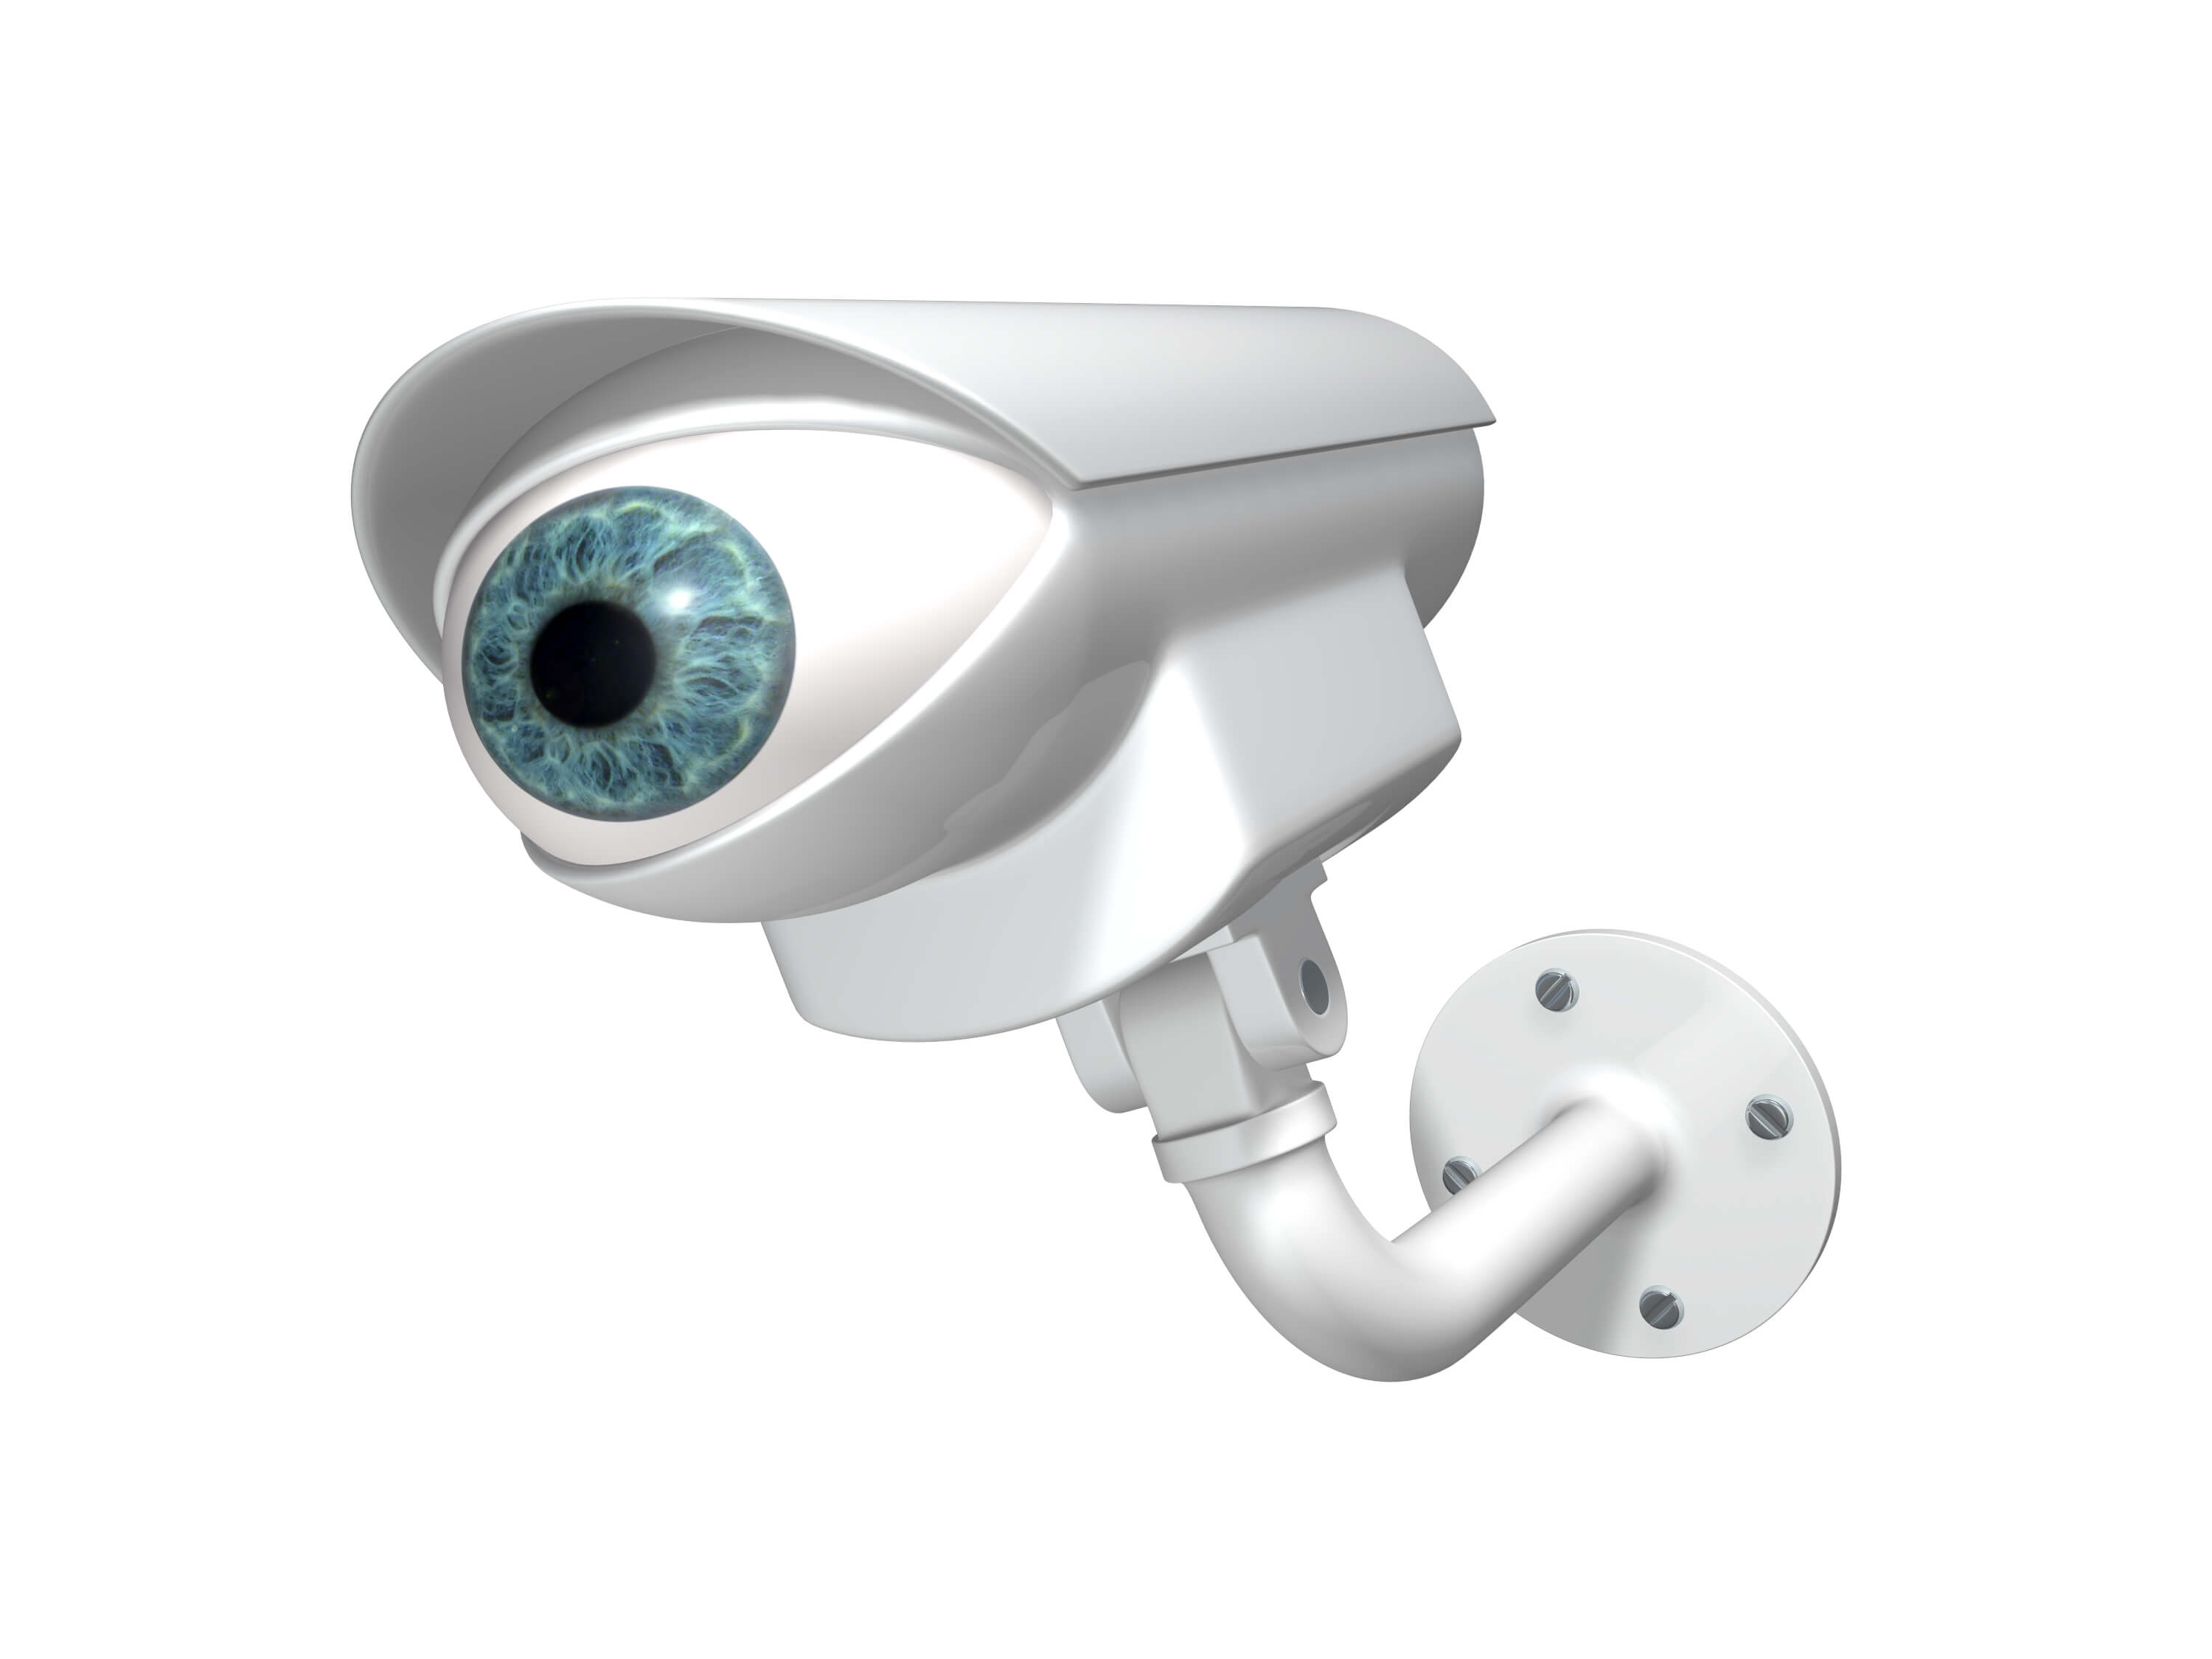 shutterstock 2329473 - CCTV Learning Center